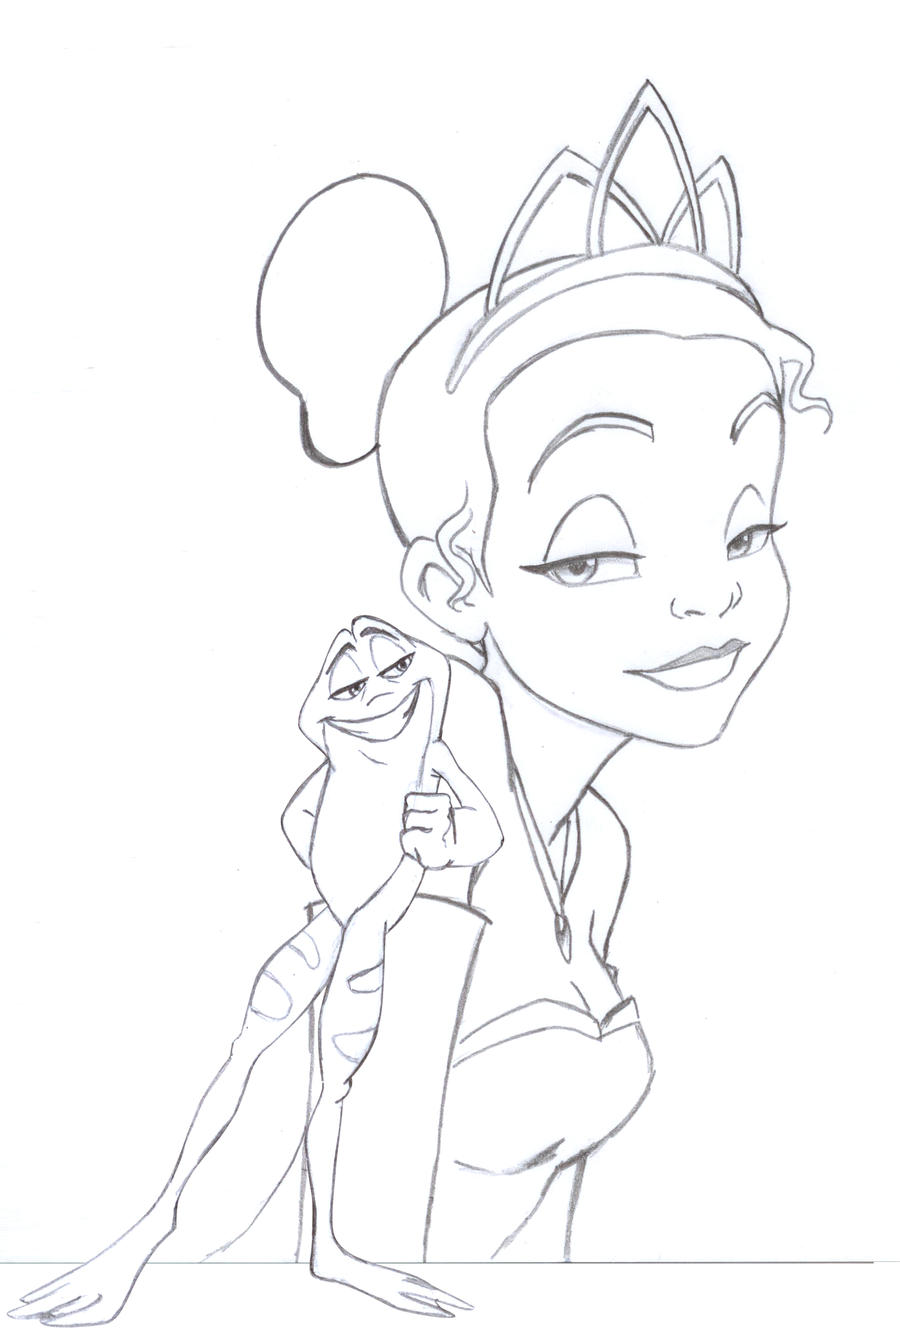 the princess and the frog by Ericorion